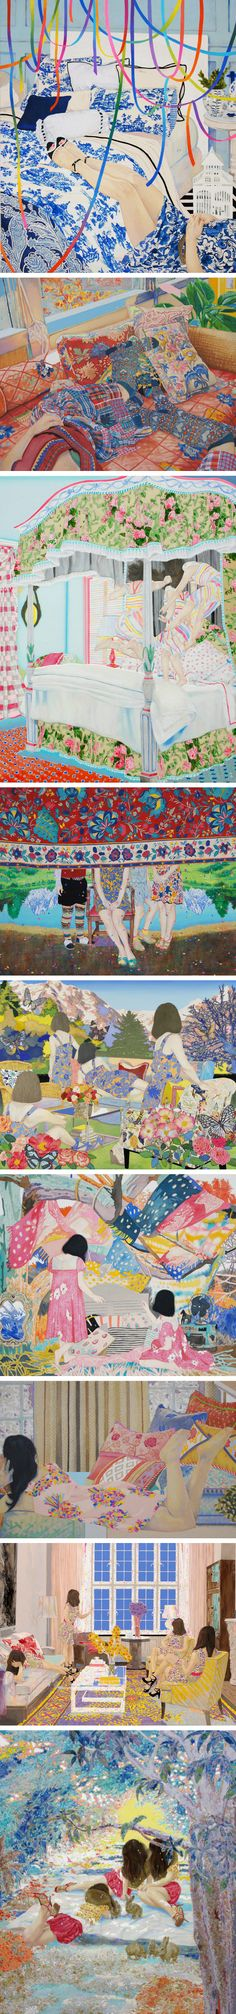 This is my dream world. Naomi Okubo – Tokyo, Japan-born artist.